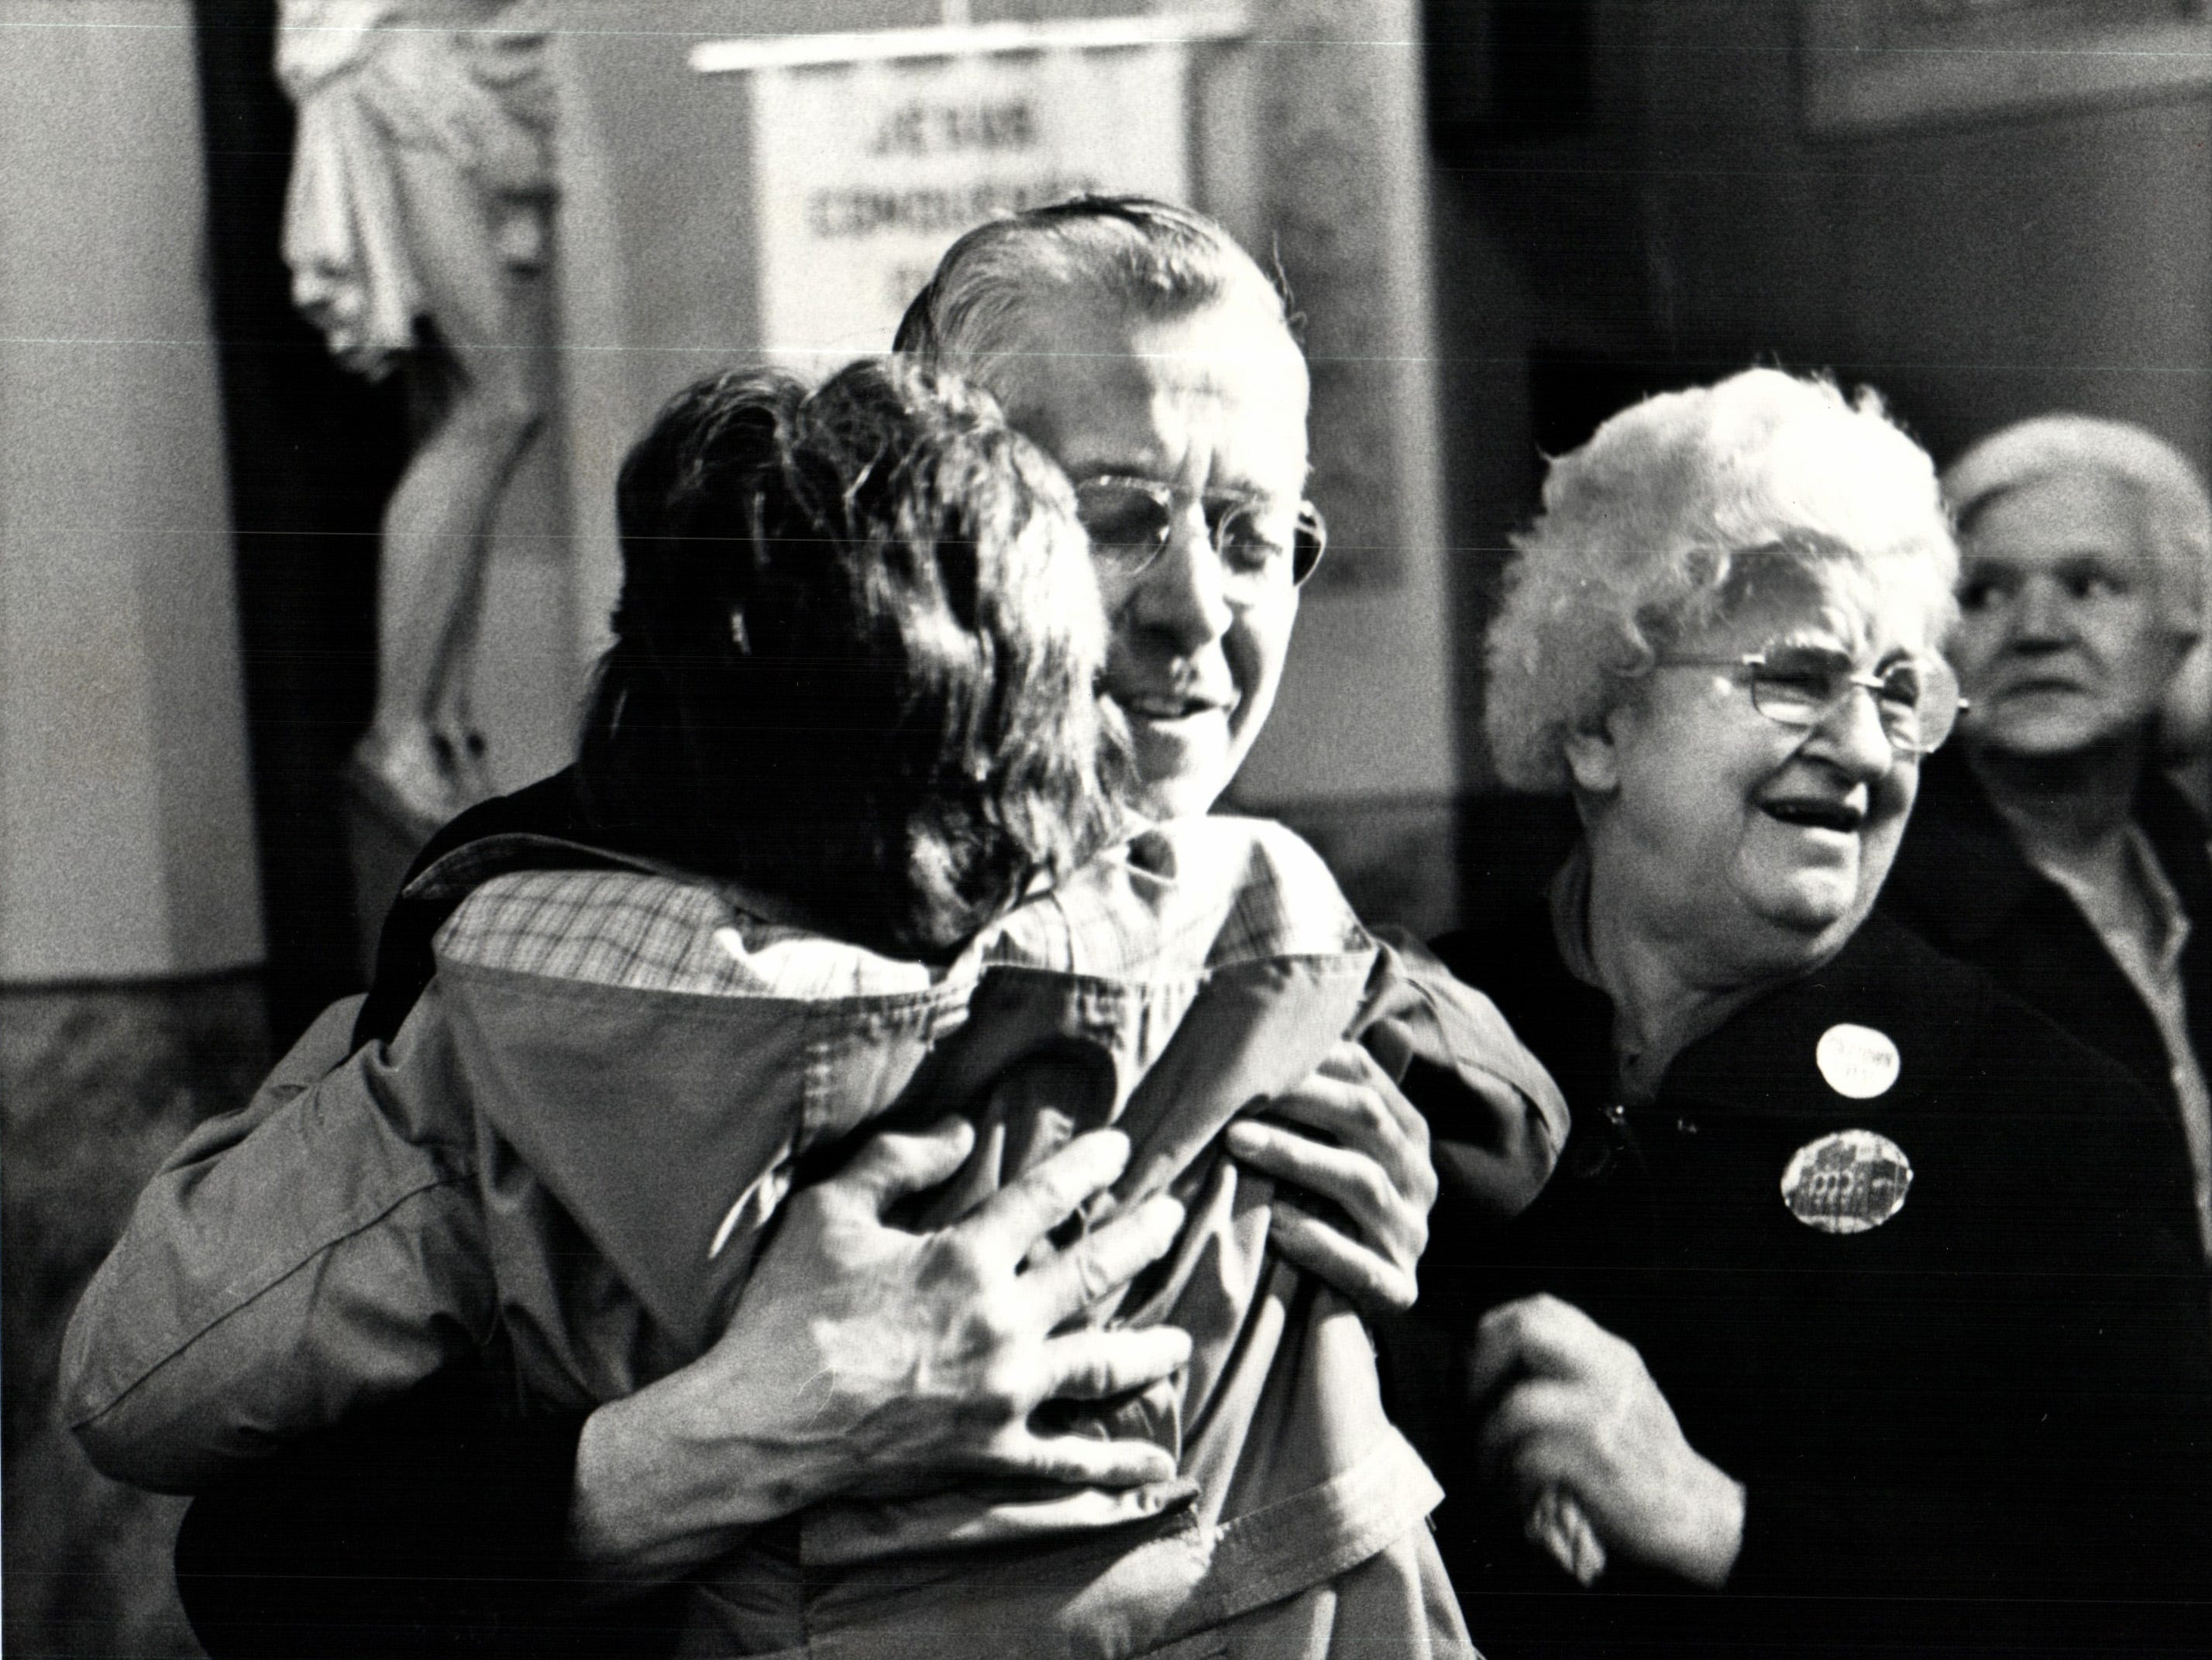 Father Joseph Karasievicz joyfully embraces a parishioner, Bernice Kaczynki, when news of the court decision reached the church. It ruled that the city of Detroit could not take over the church until June 17th. The church, in the Poletown neighborhood of Detroit, Michigan, sits on land that is being forcibly taken to build a General Motors plant. Second from right is Josephine Jakubowski.